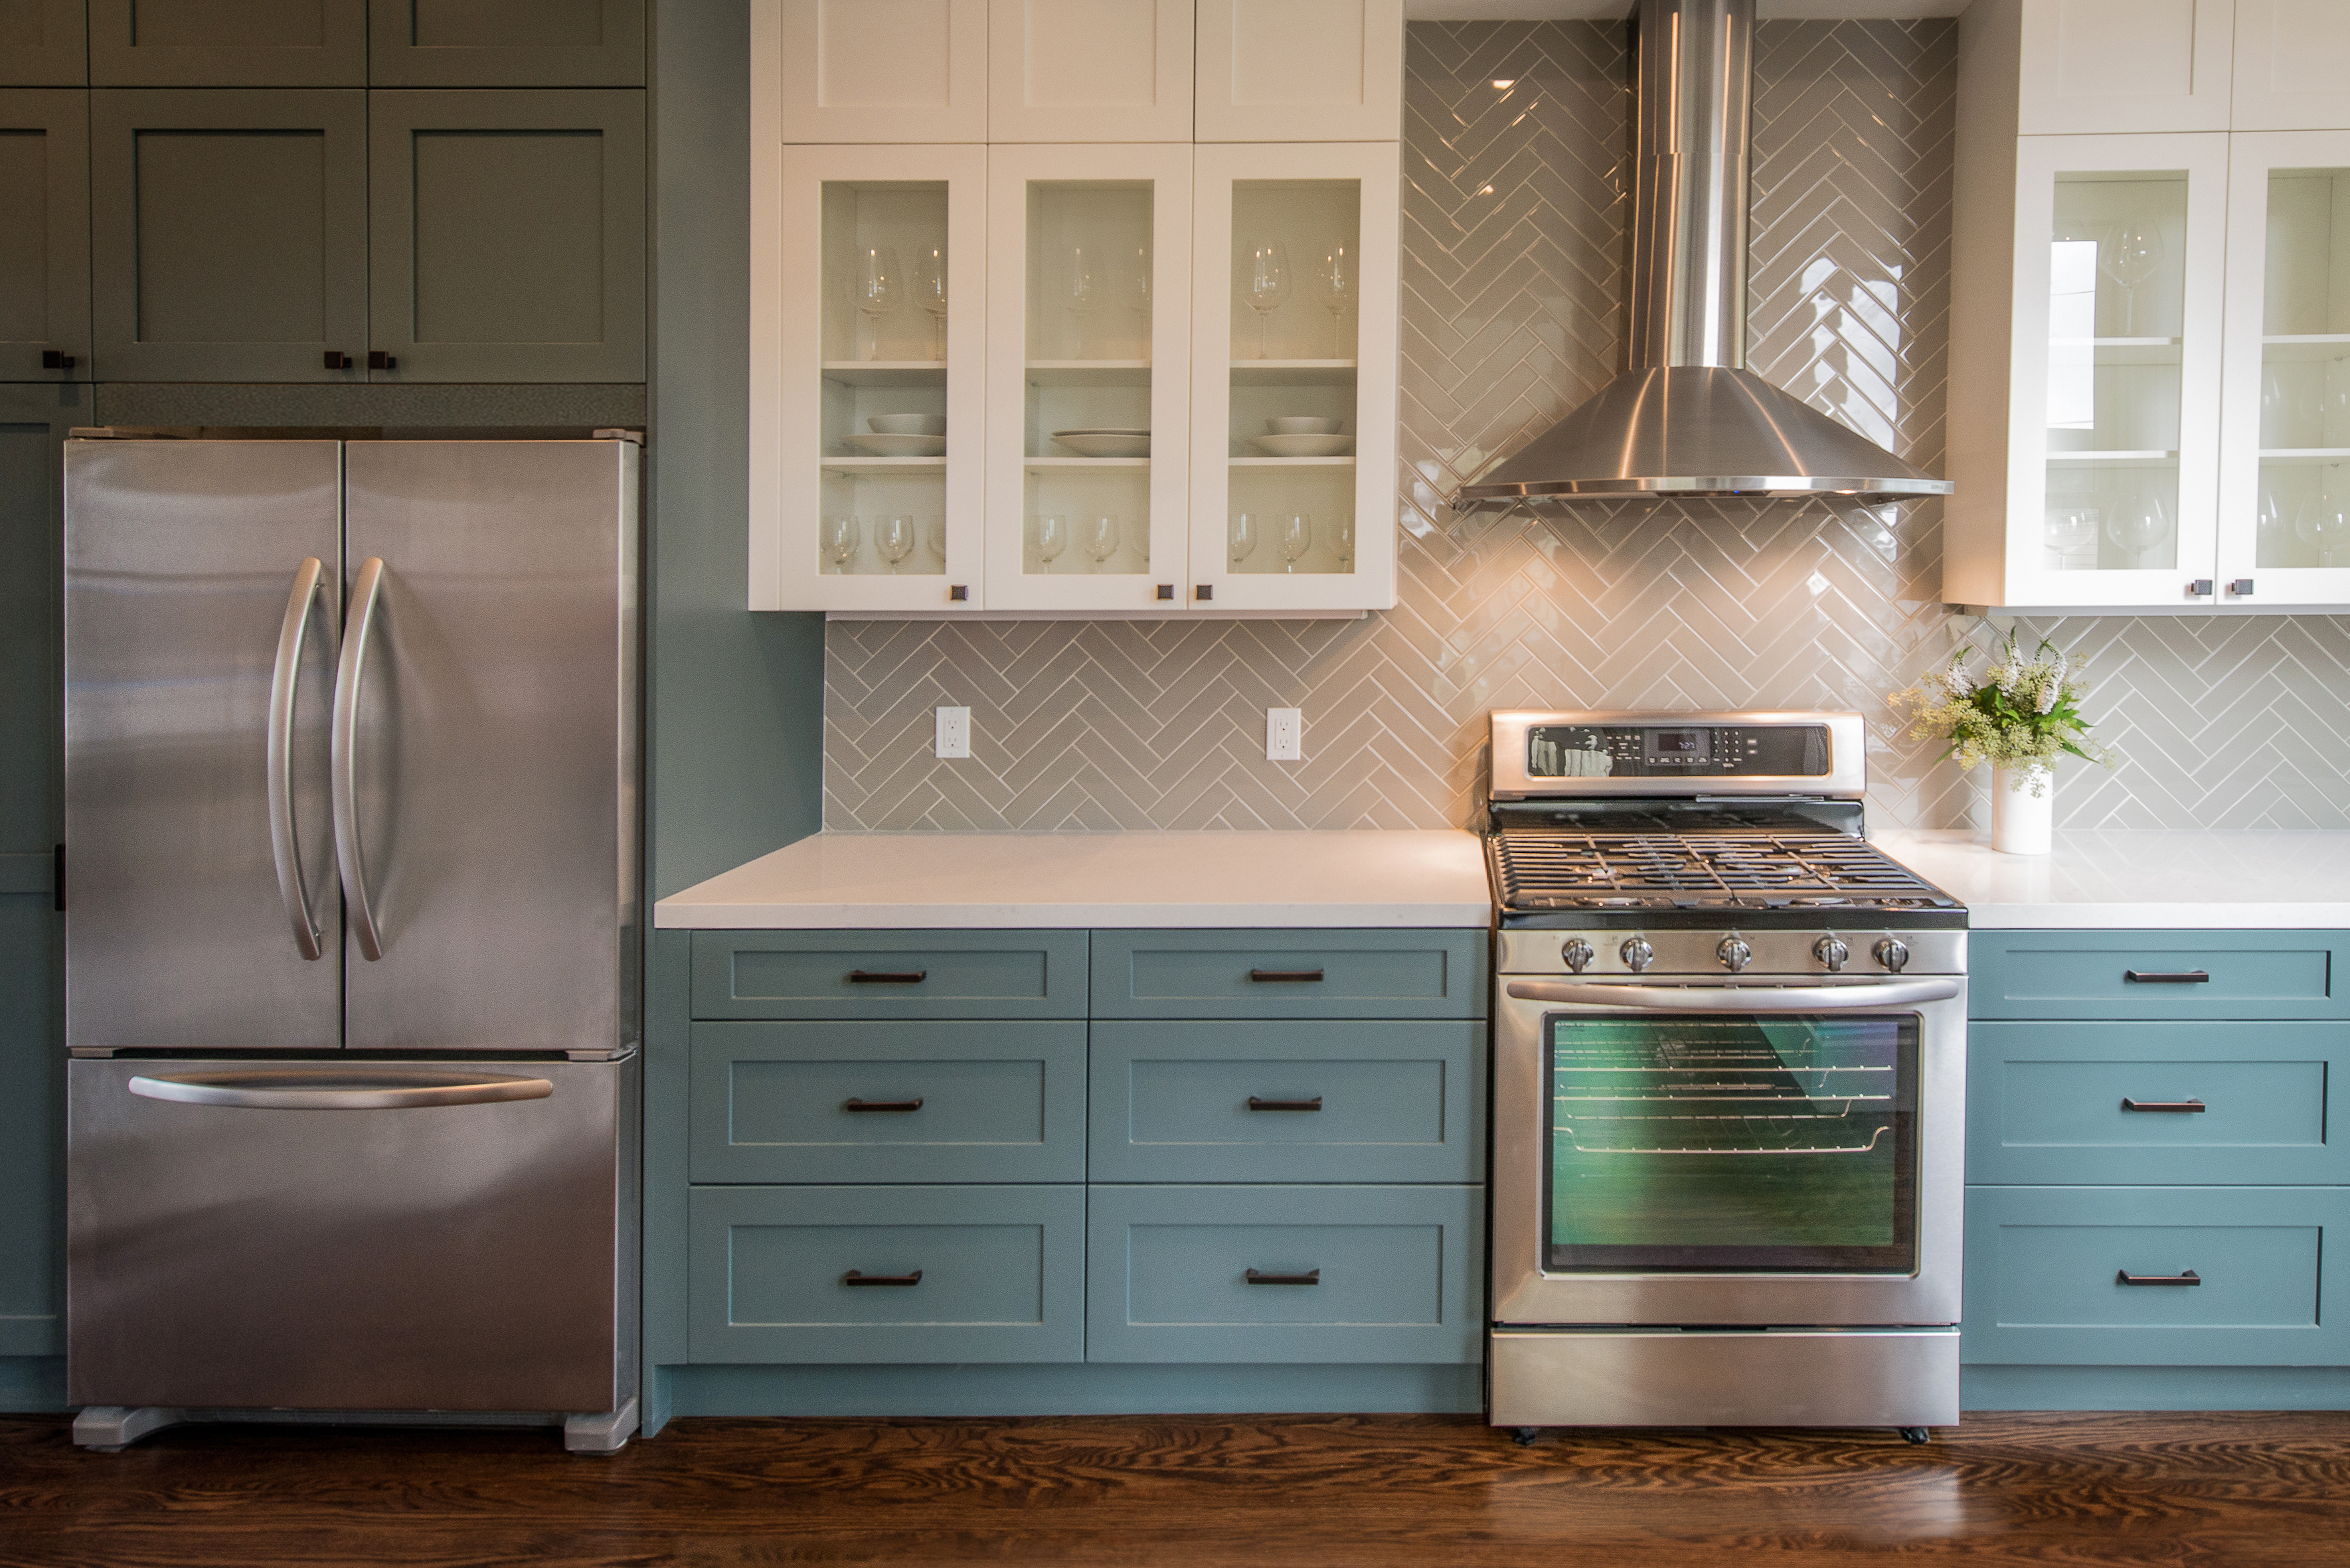 Modern Kitchen With Teal Base Cabinets Kitchen Fronts Of Georgia